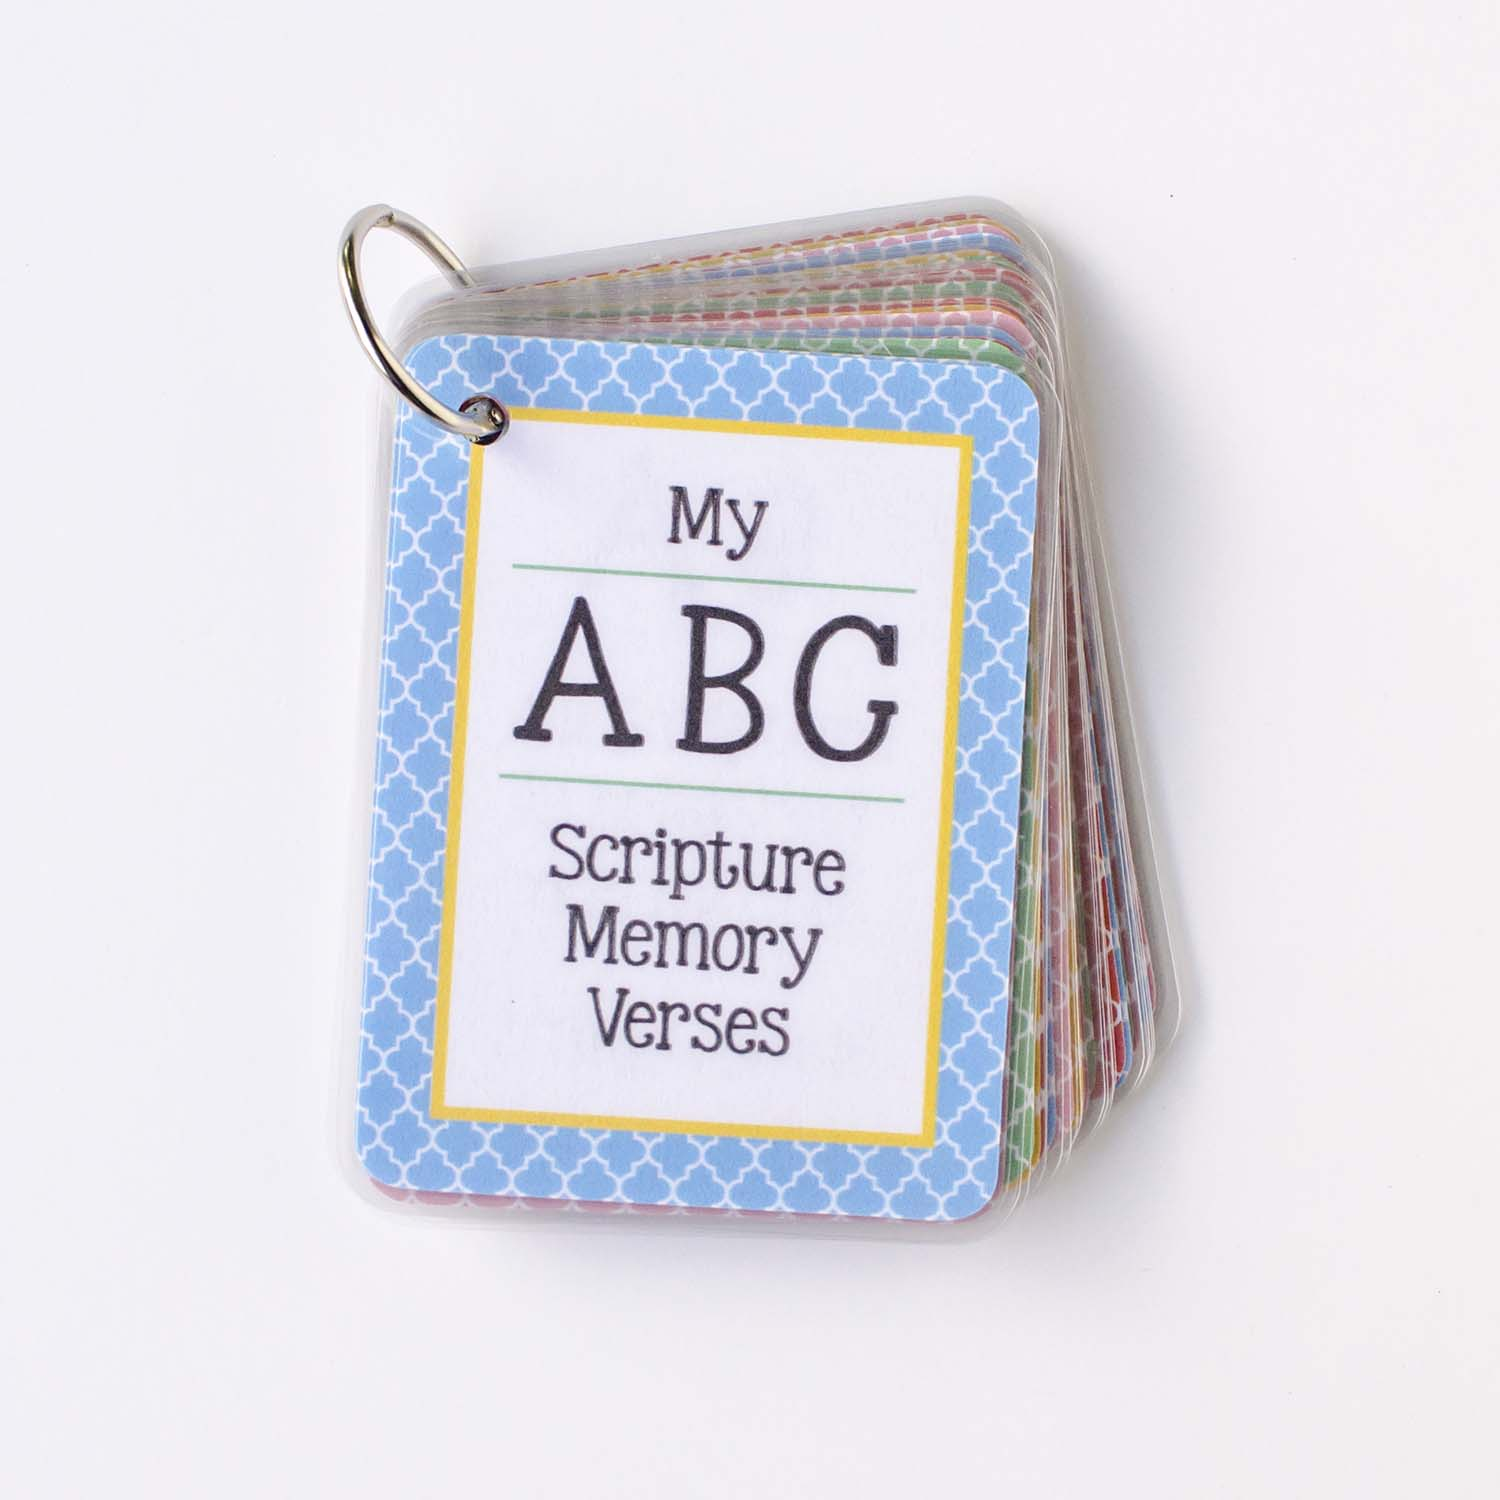 image regarding Abc Cards Printable identified as Printable ABC Scripture Memory Playing cards - unOriginal Mother